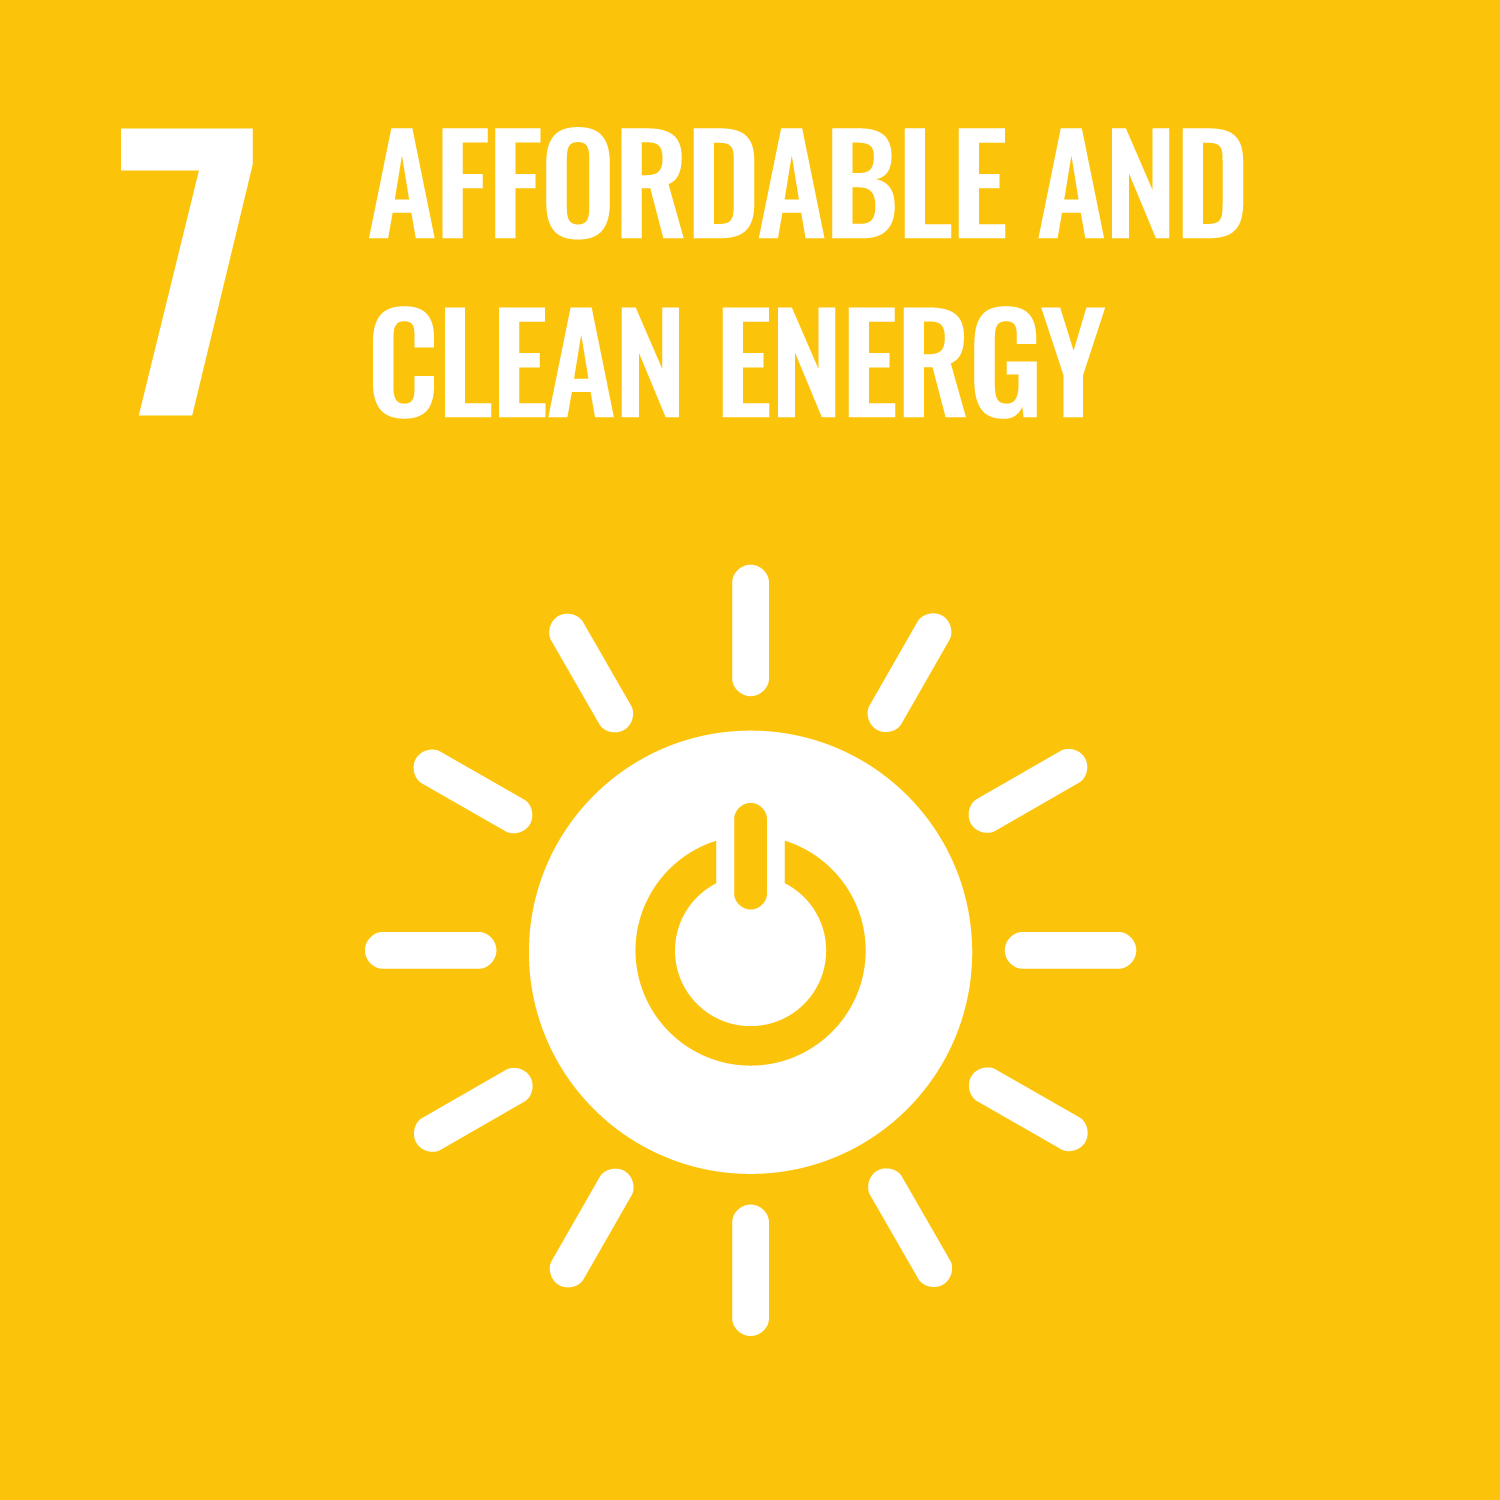 Sustainable Development Goals – Affordable and clean energy